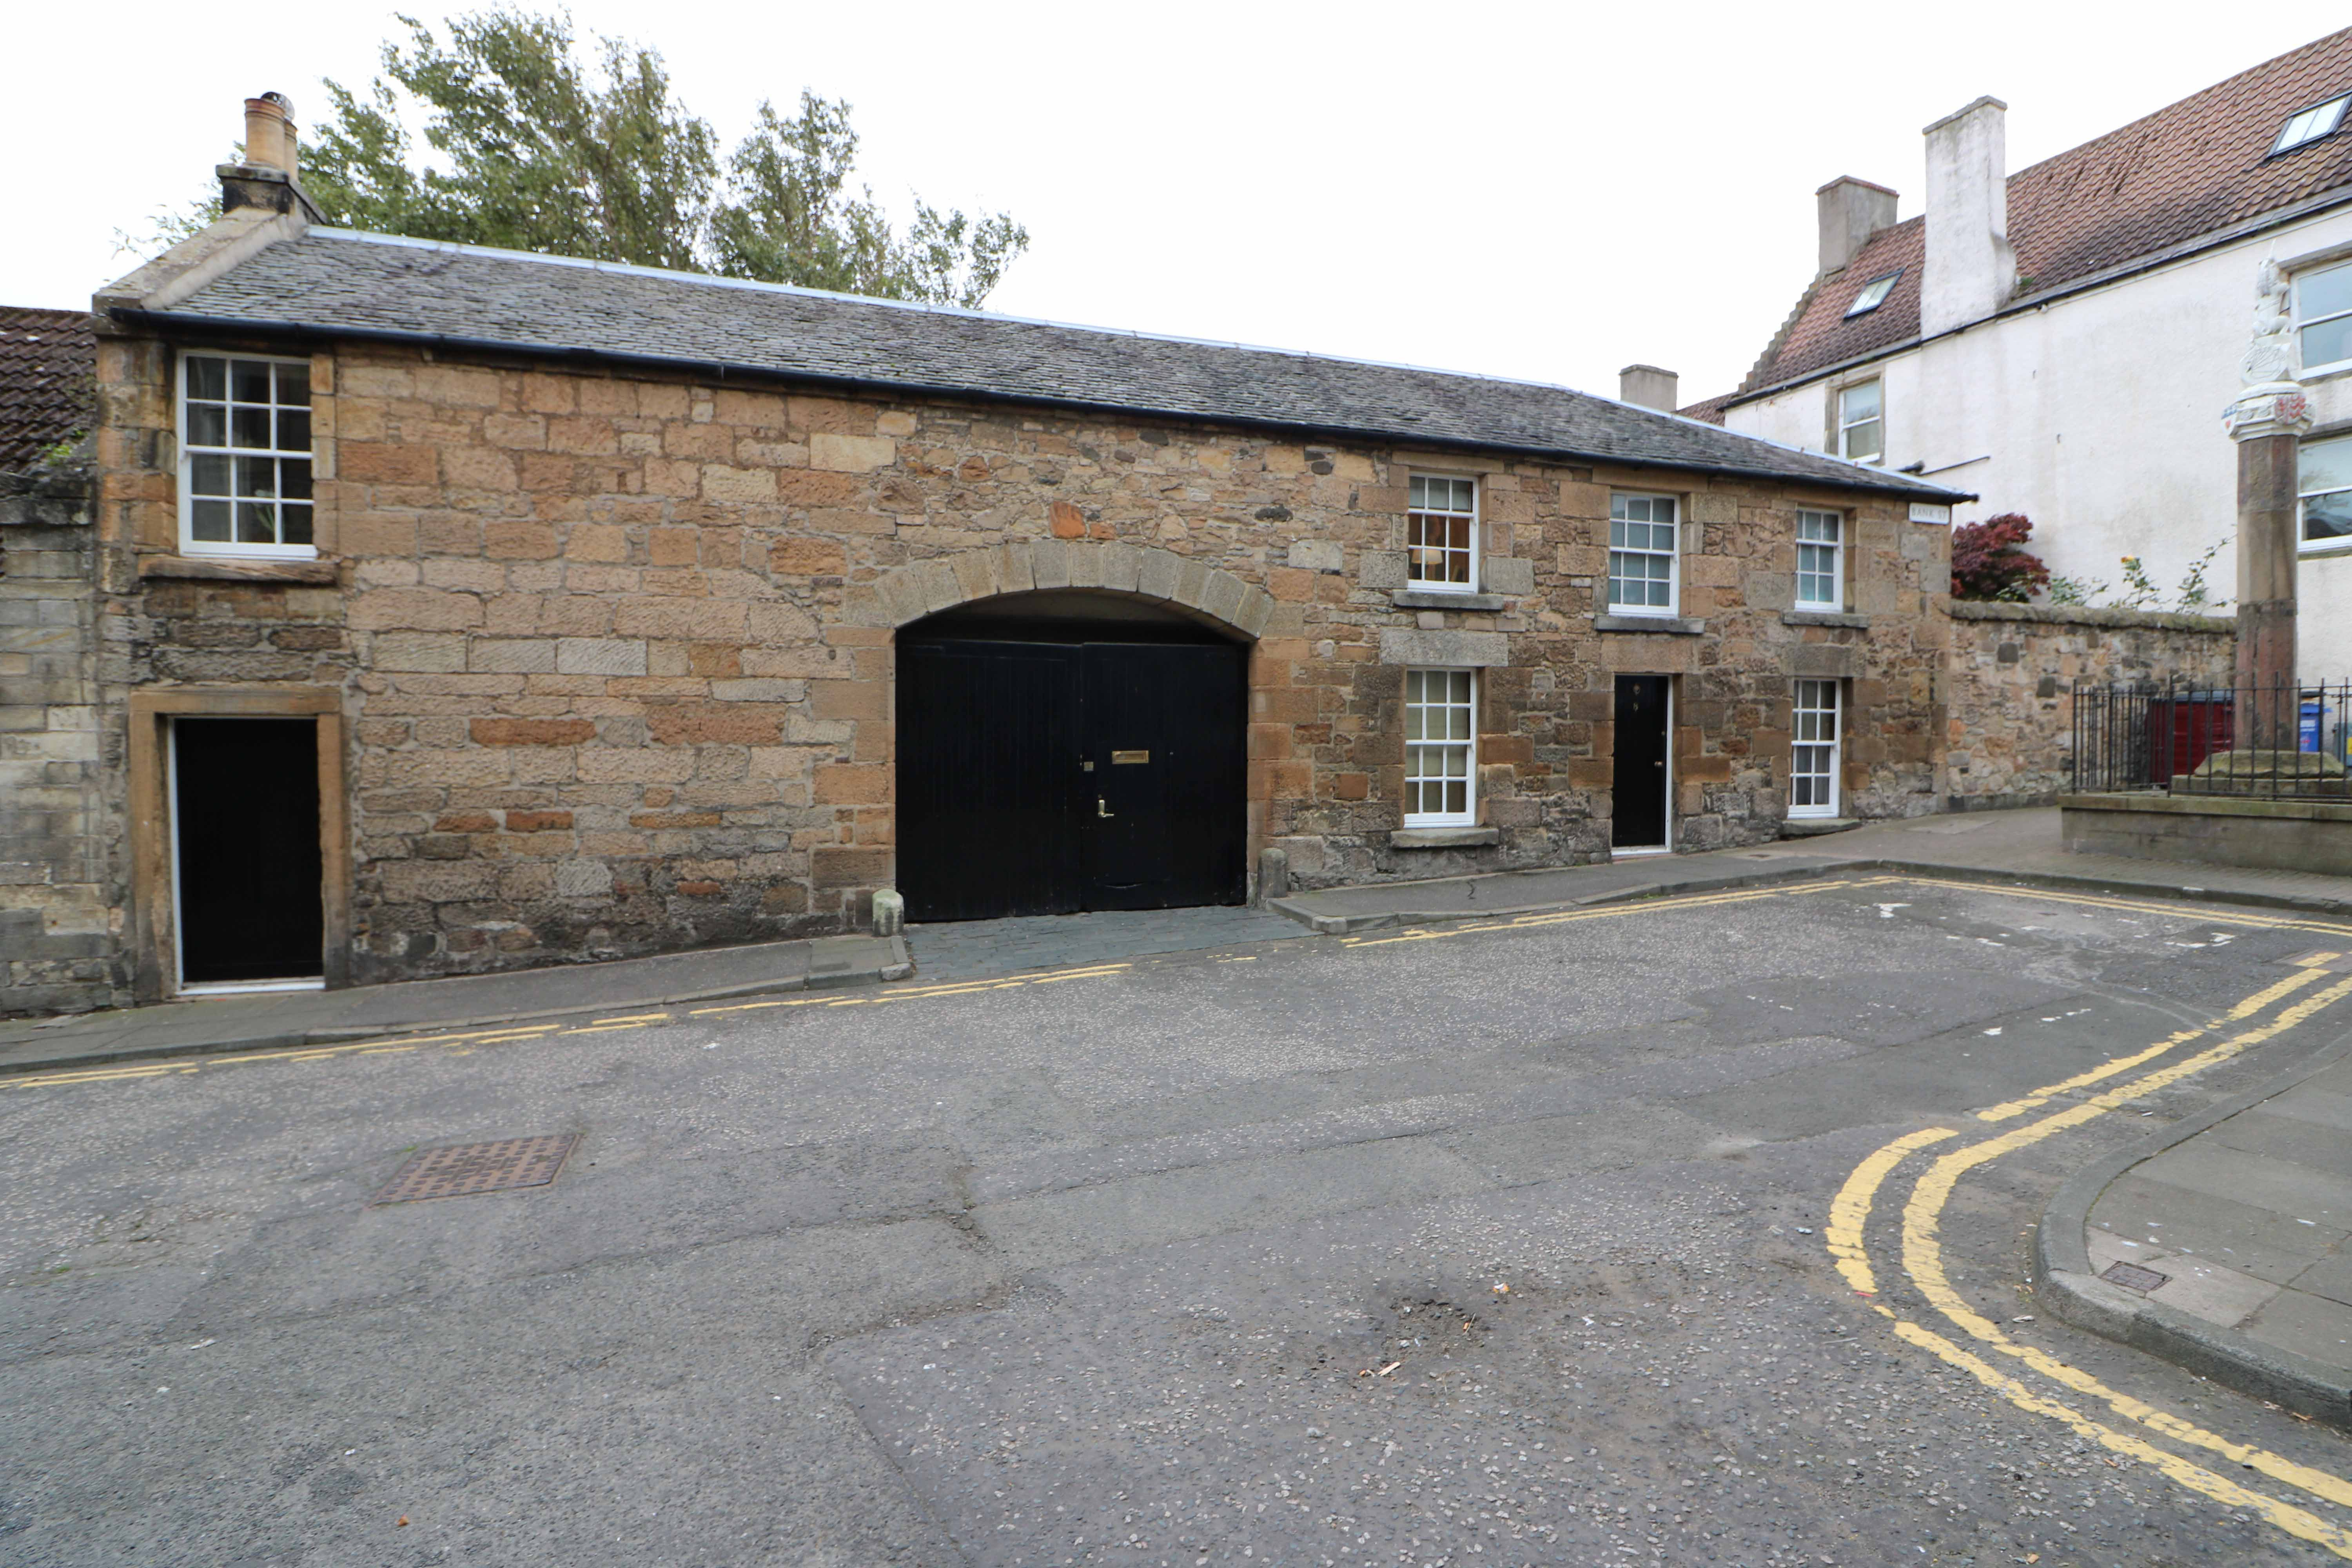 4 Bed Stone Cottage - Park House Stables, Bank Street, Inverkeithing